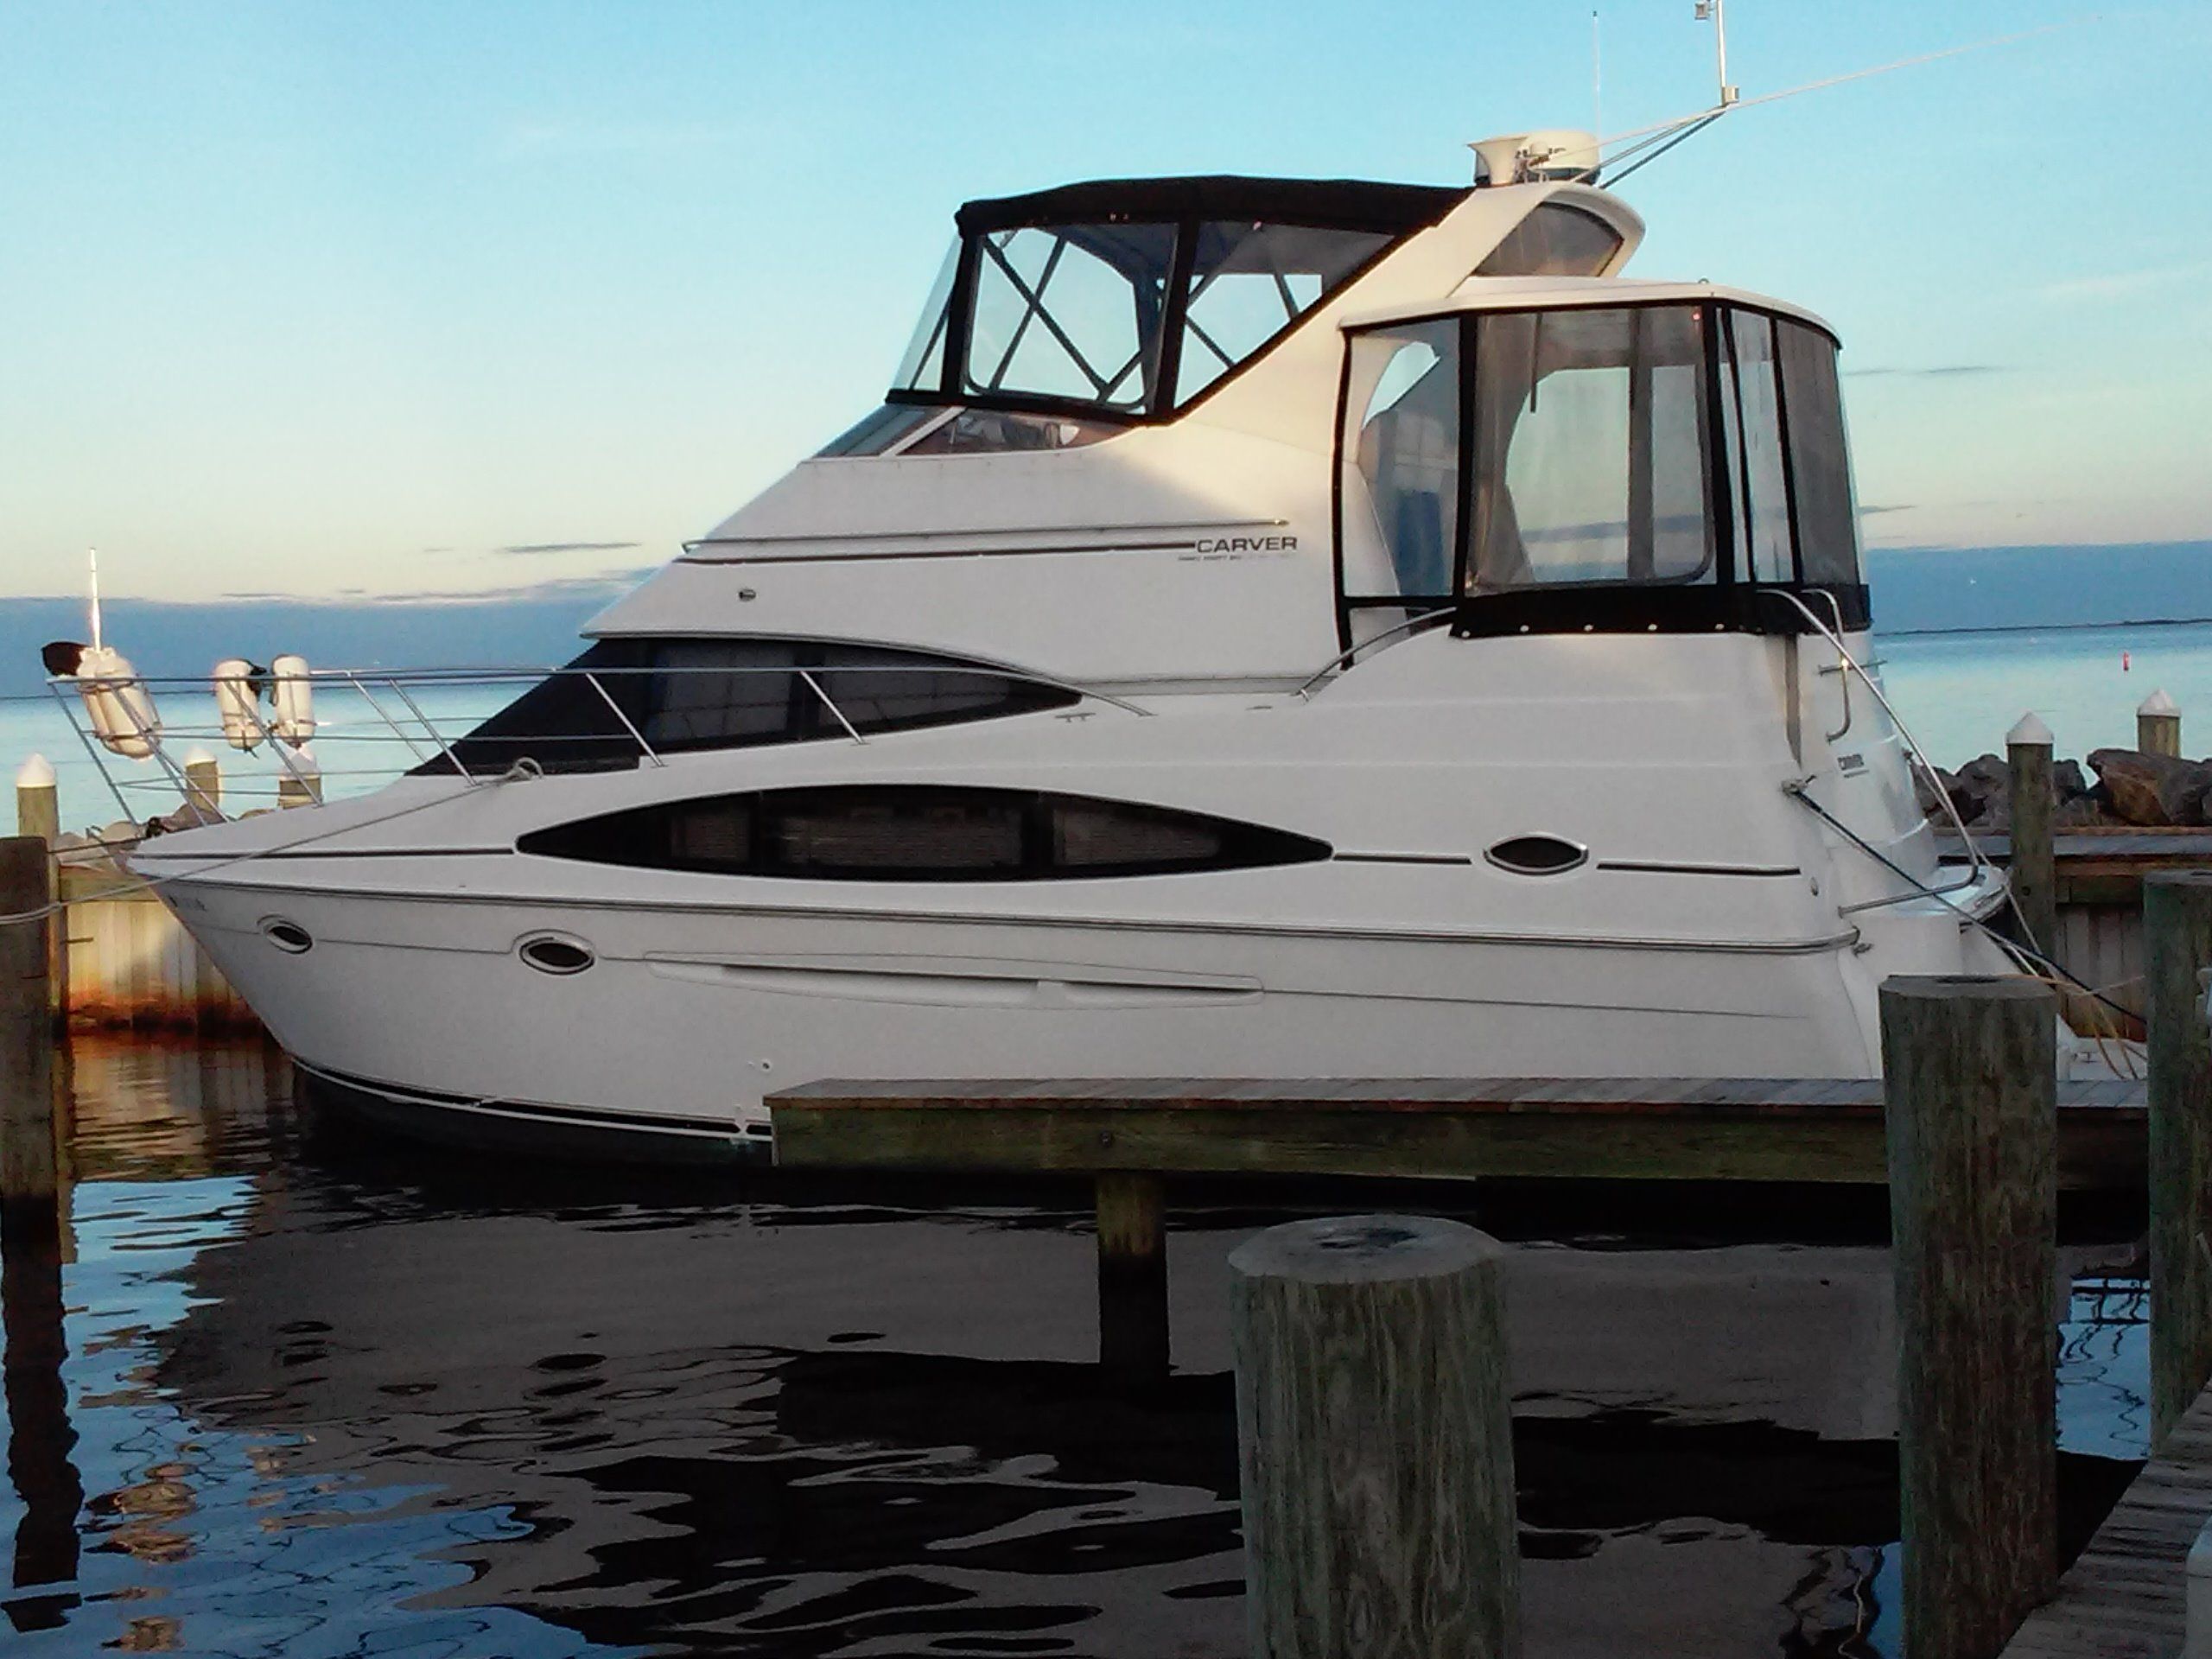 power buyers guide boats and top cruisers cabins be back motor of cabin called boat backcove cover best yachts com all can